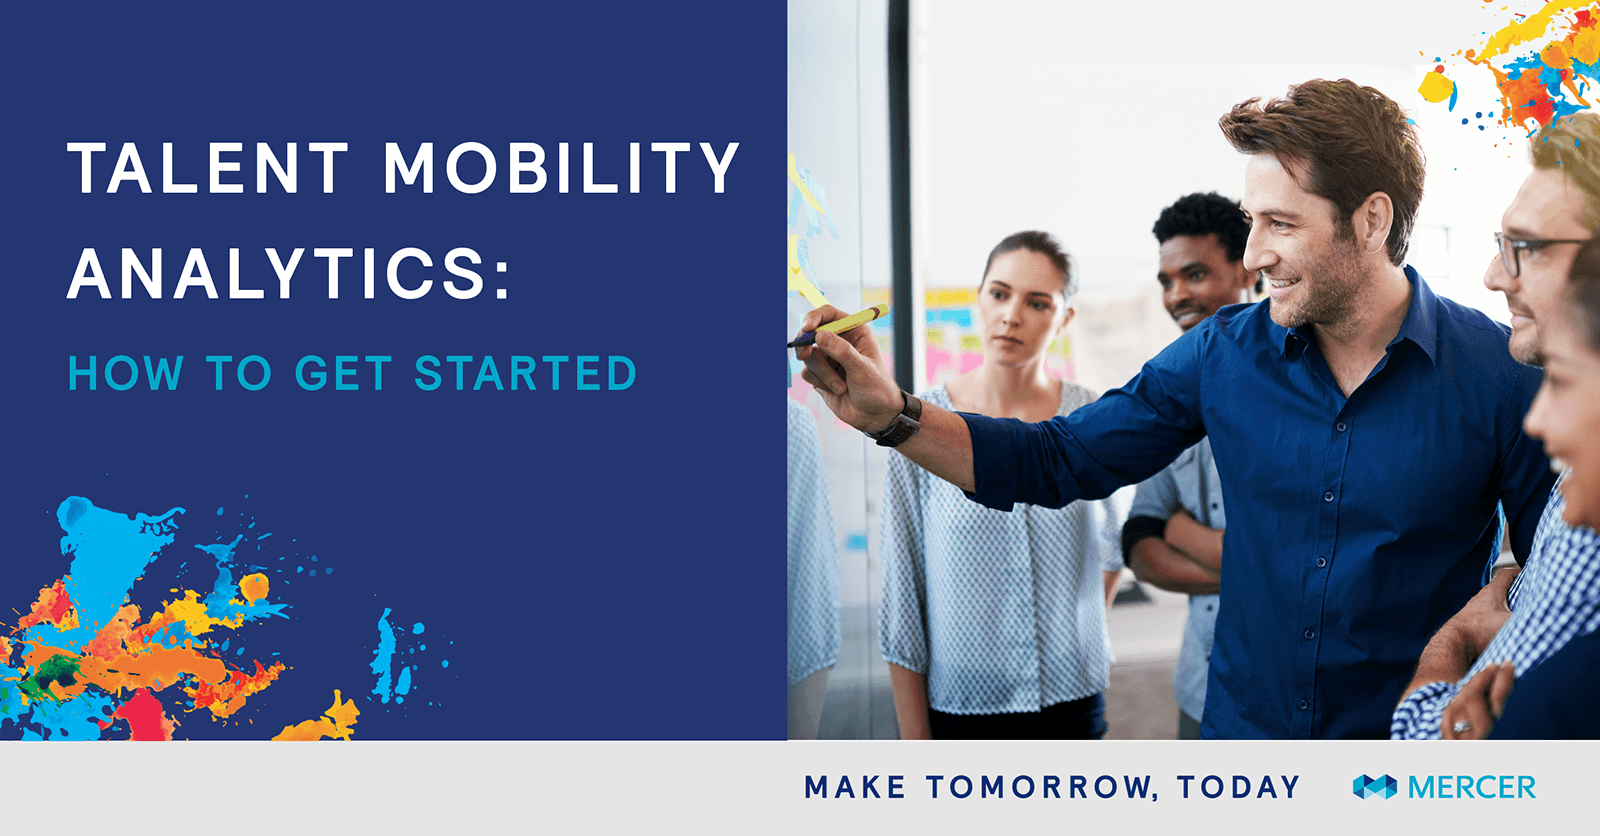 Talent Mobility Analytics: How to Get Started